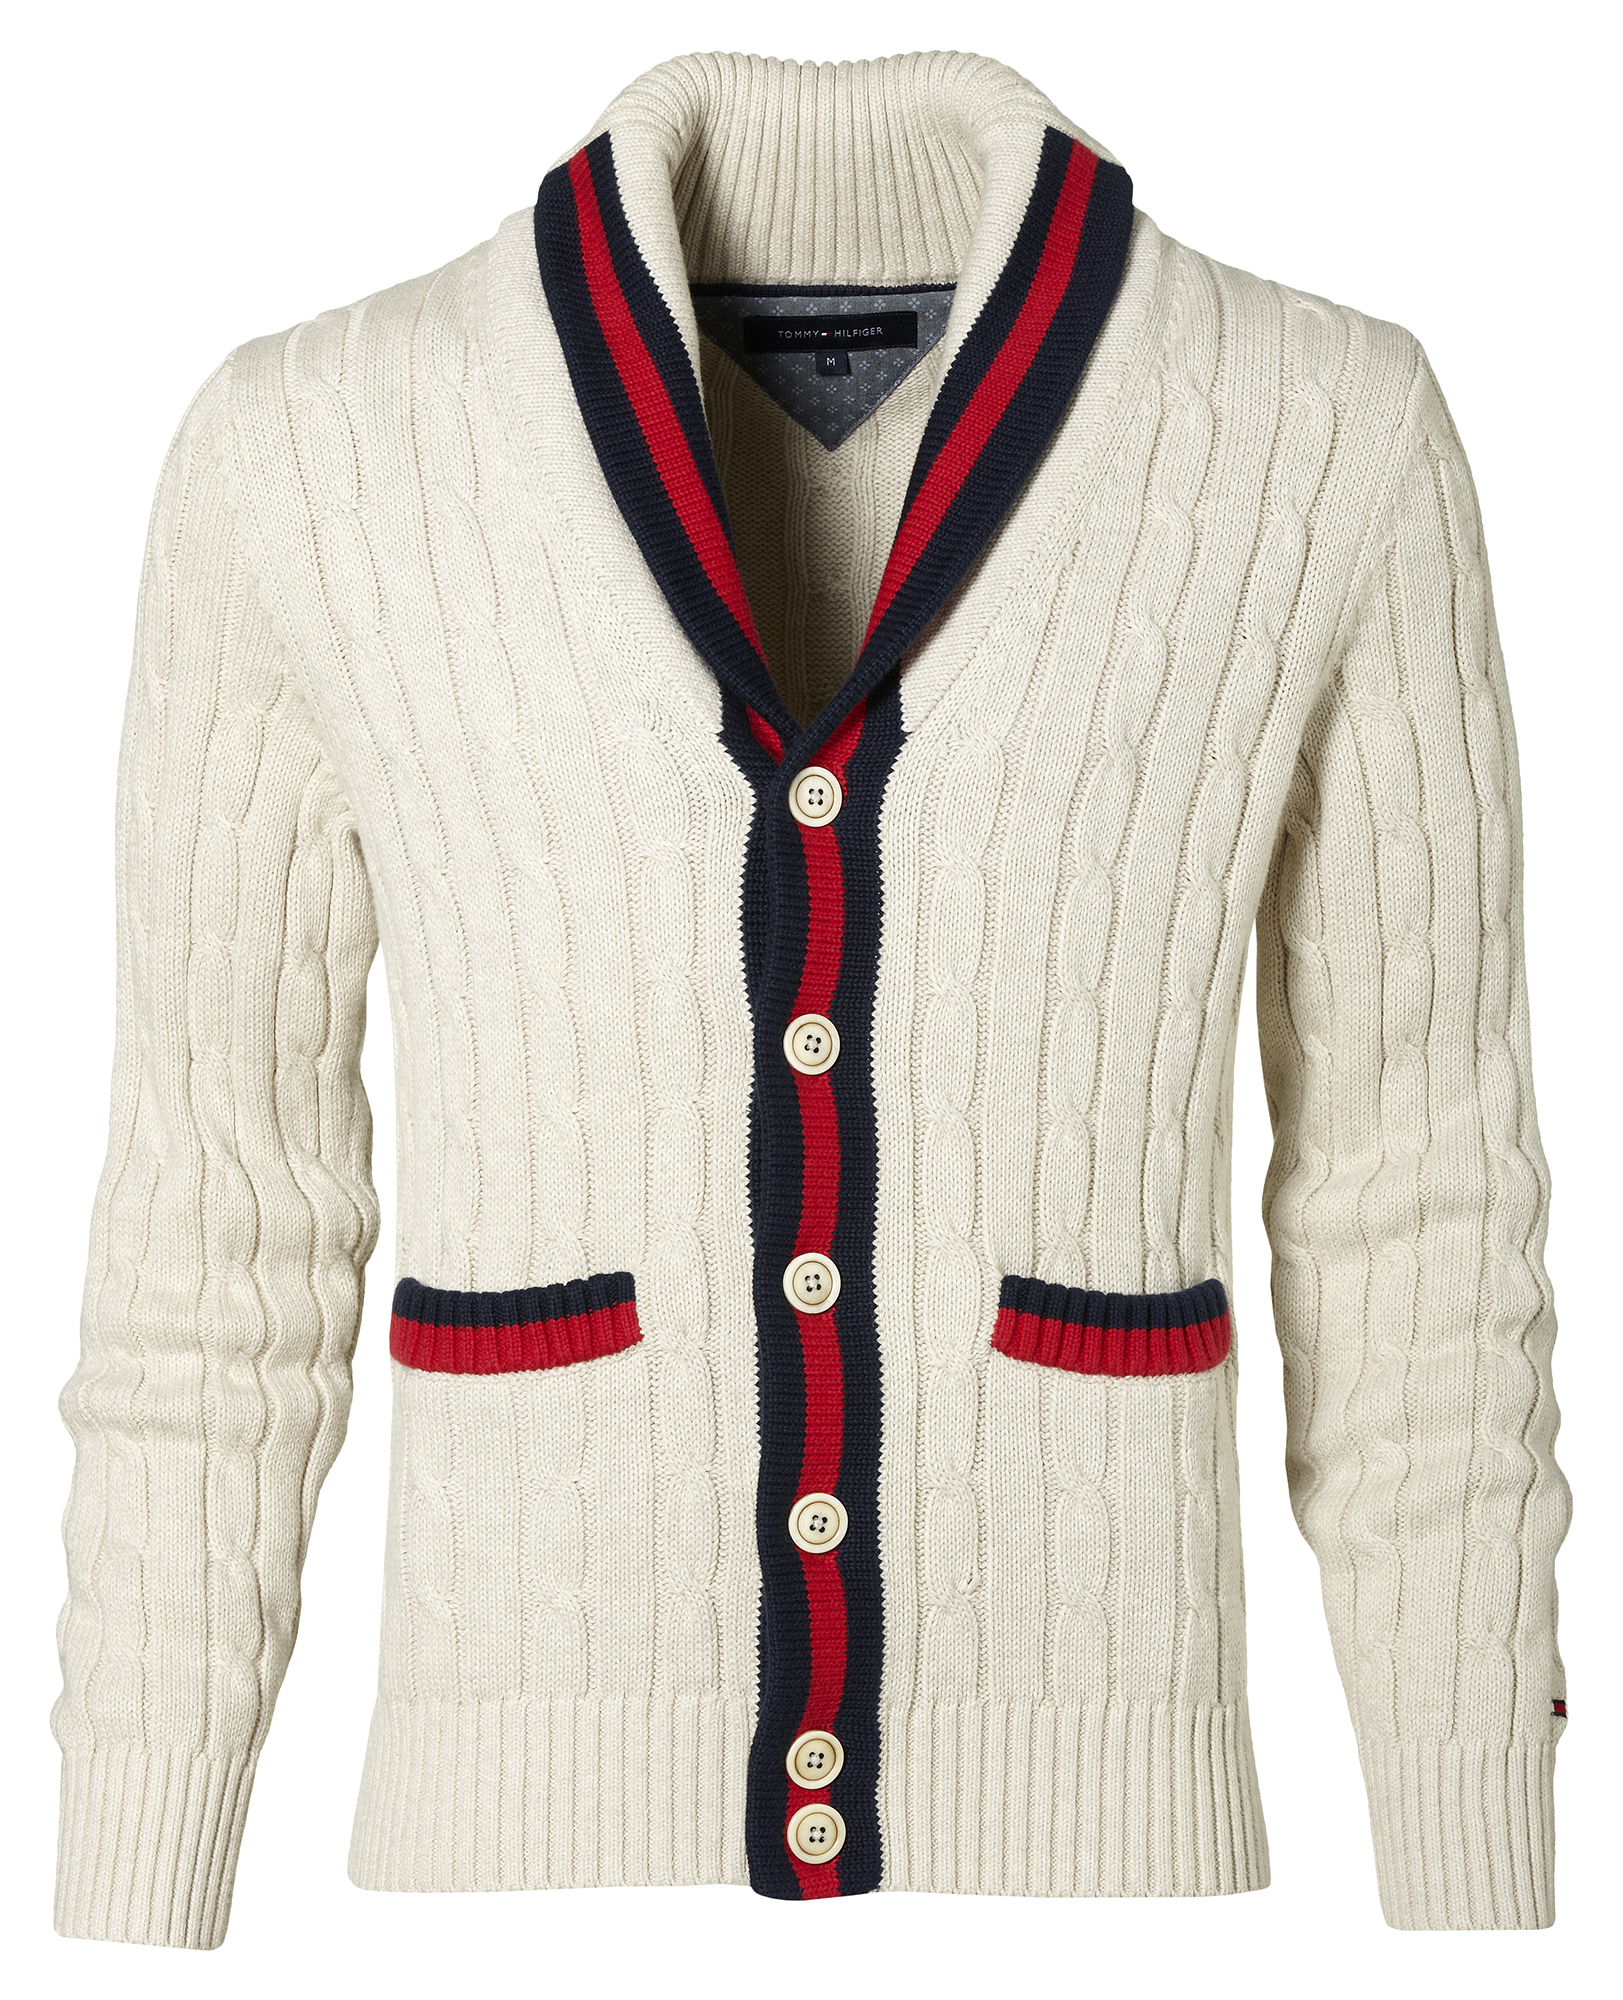 0887830242118_WILL CRICKET SHAWL CARDIGAN